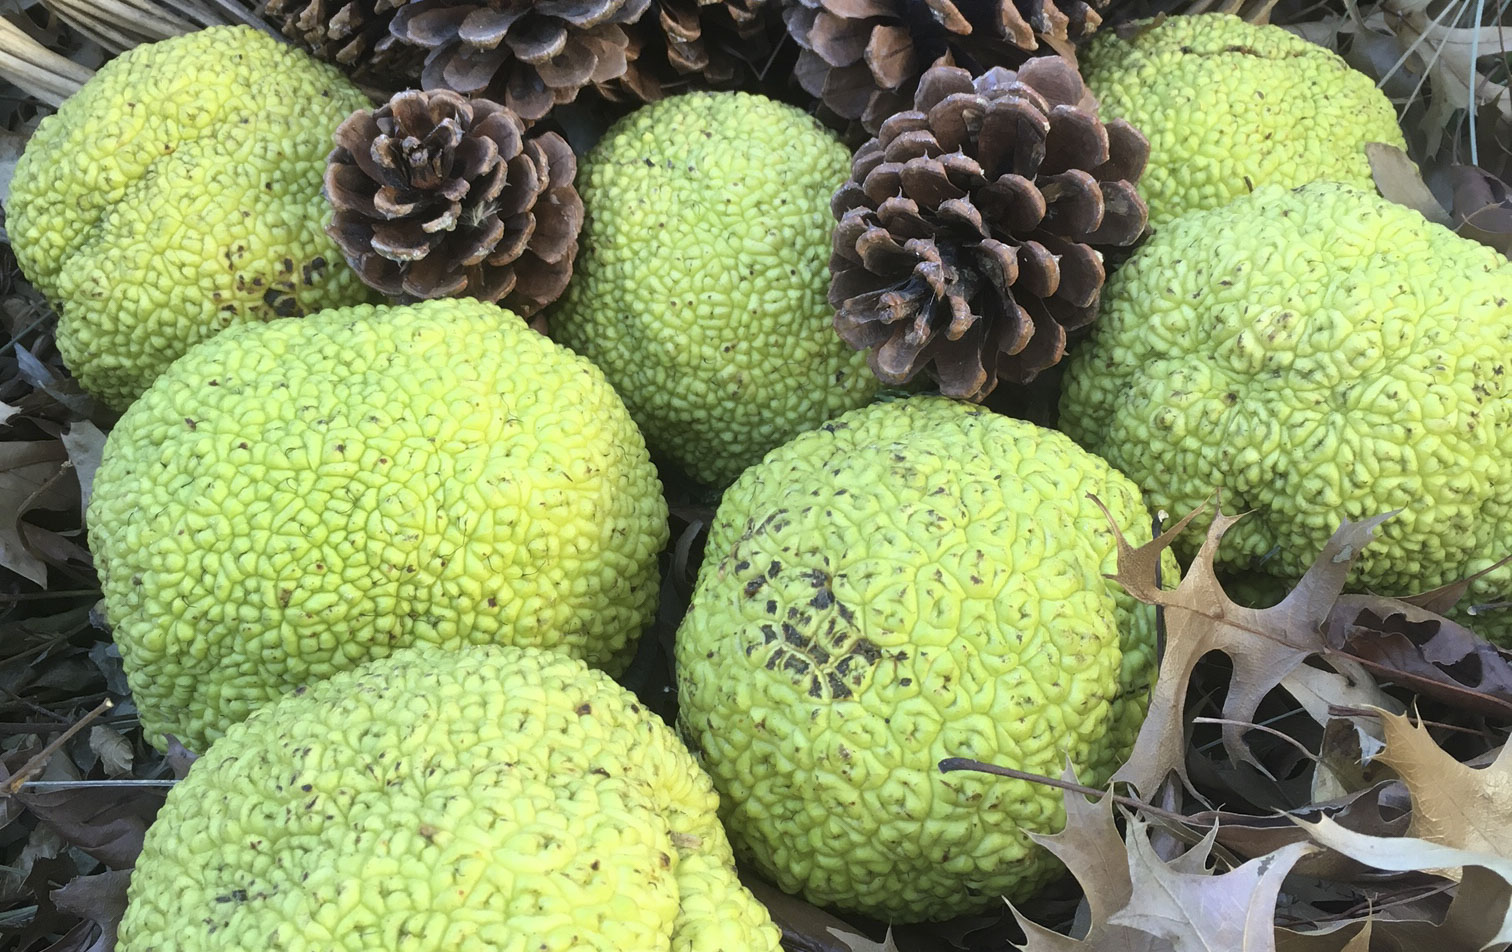 Osage Orange fruit is roughly the size of a softball.